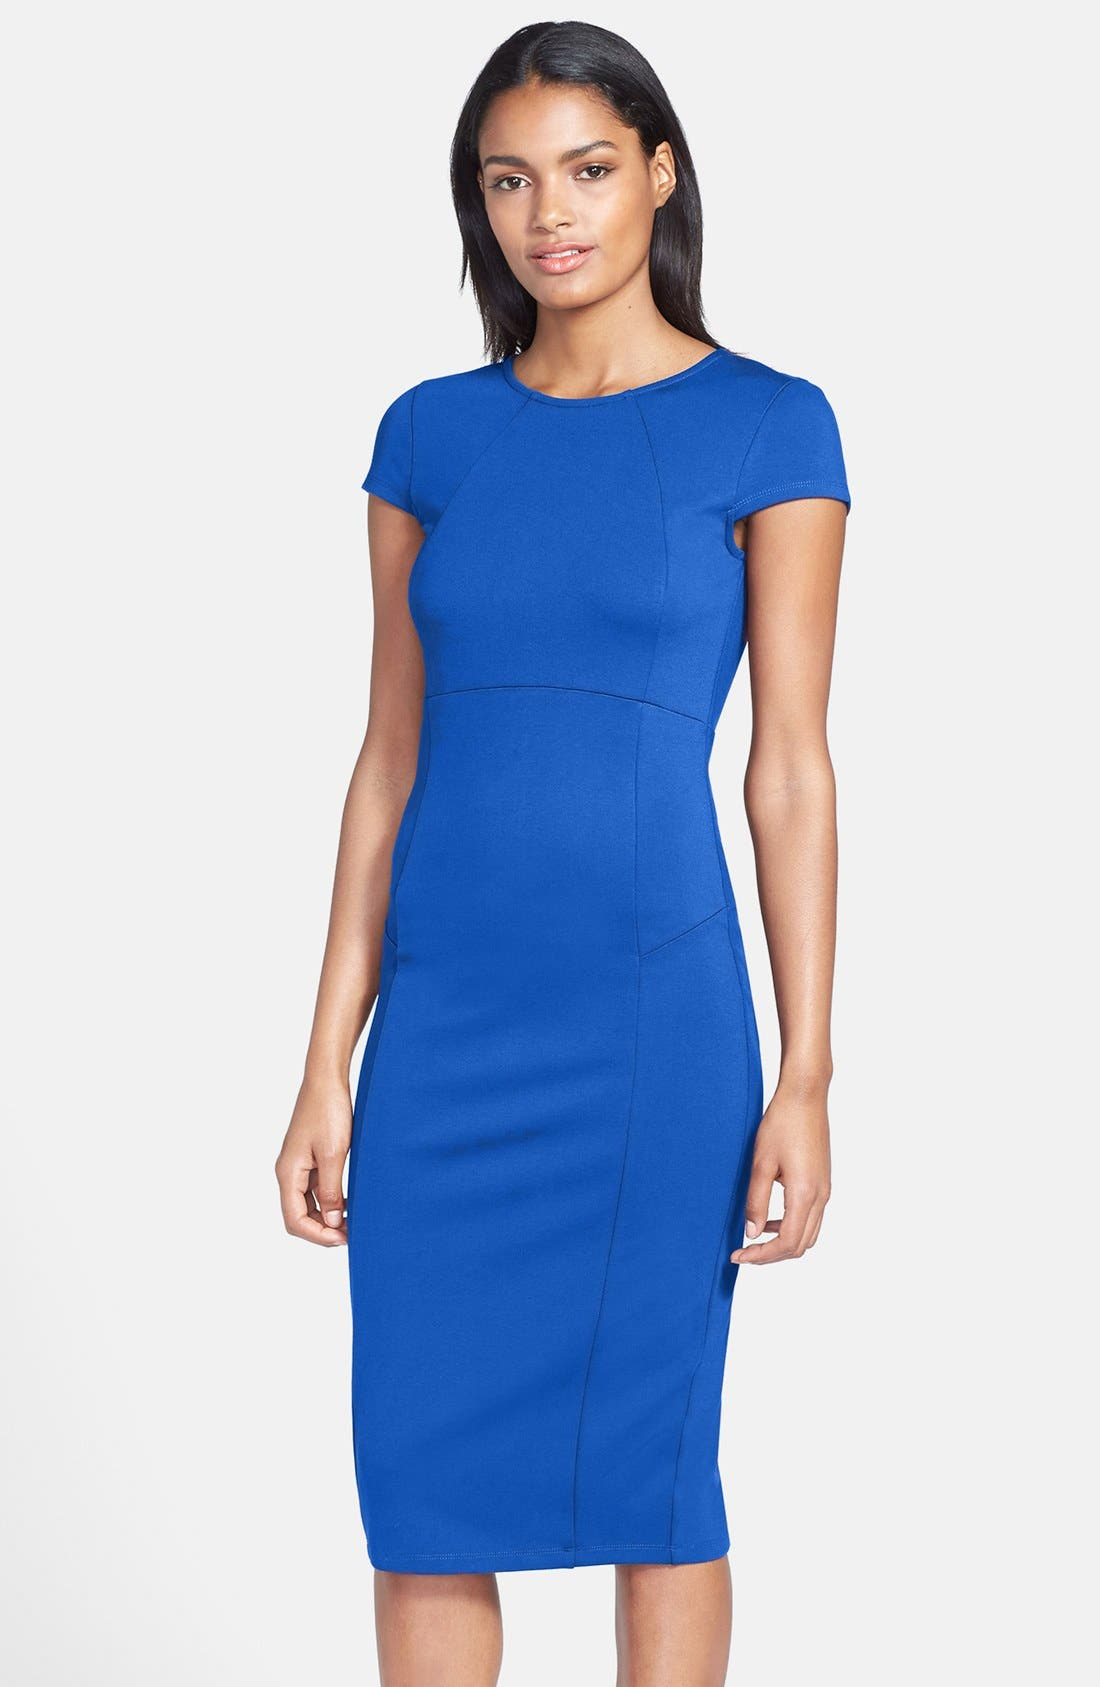 Felicity & Coco Ward Seamed Pencil Dress (Regular & Petite) (Nordstrom Exclusive)